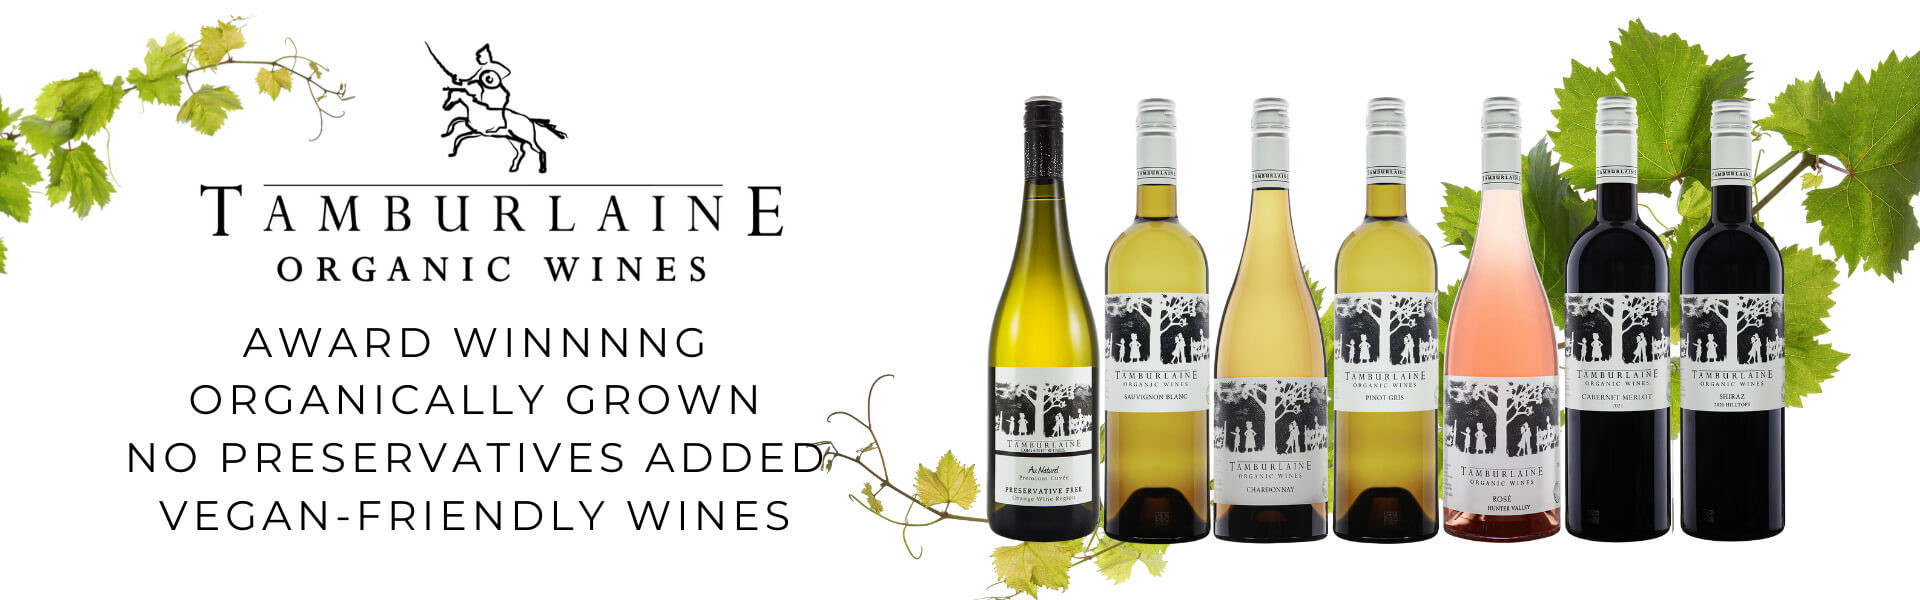 Buy organic, preservative free & vegan friendly wines from Tamburlaine online at Wine Sellers Direct - Australia's independent liquor specialists.